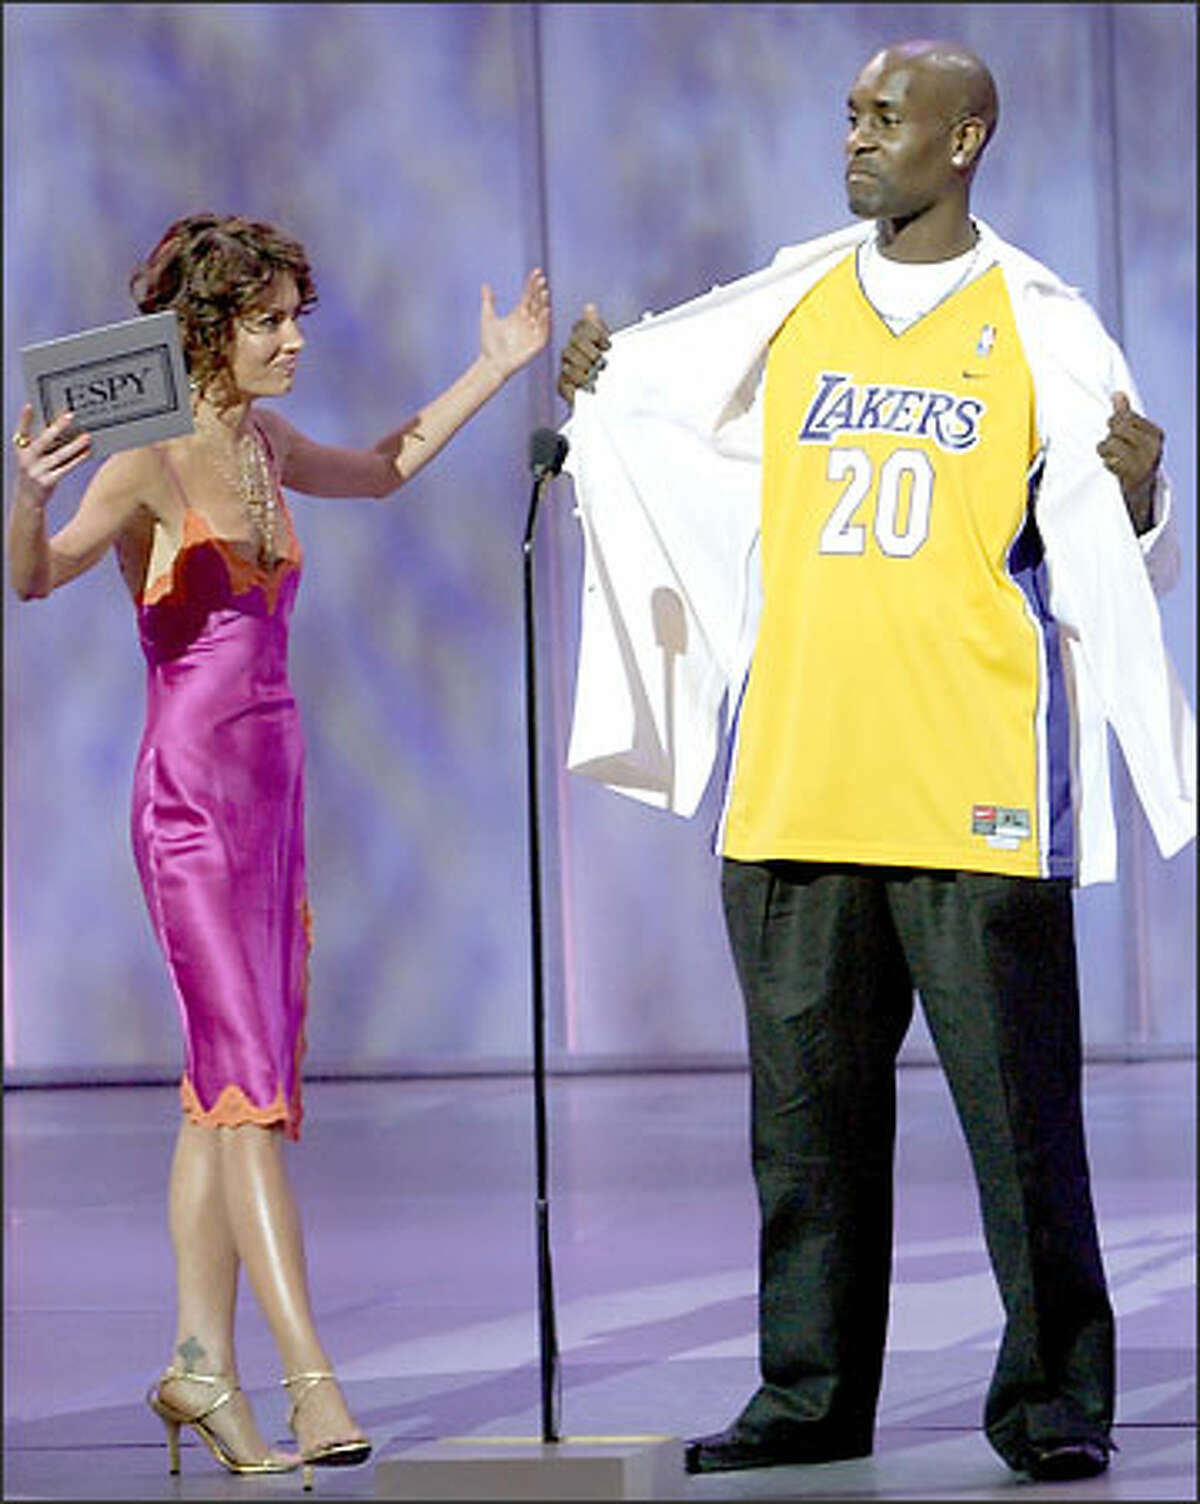 Actress Lara Flynn Boyle reacts as new Los Angeles Laker Gary Payton unveils a Lakers jersey before they present an award together during the 11th annual ESPY Awards, Wednesday, July 16, 2003, in Los Angeles. The ESPY Awards honor the year's top performances and sports moments. (AP Photo/Kevork Djansezian)